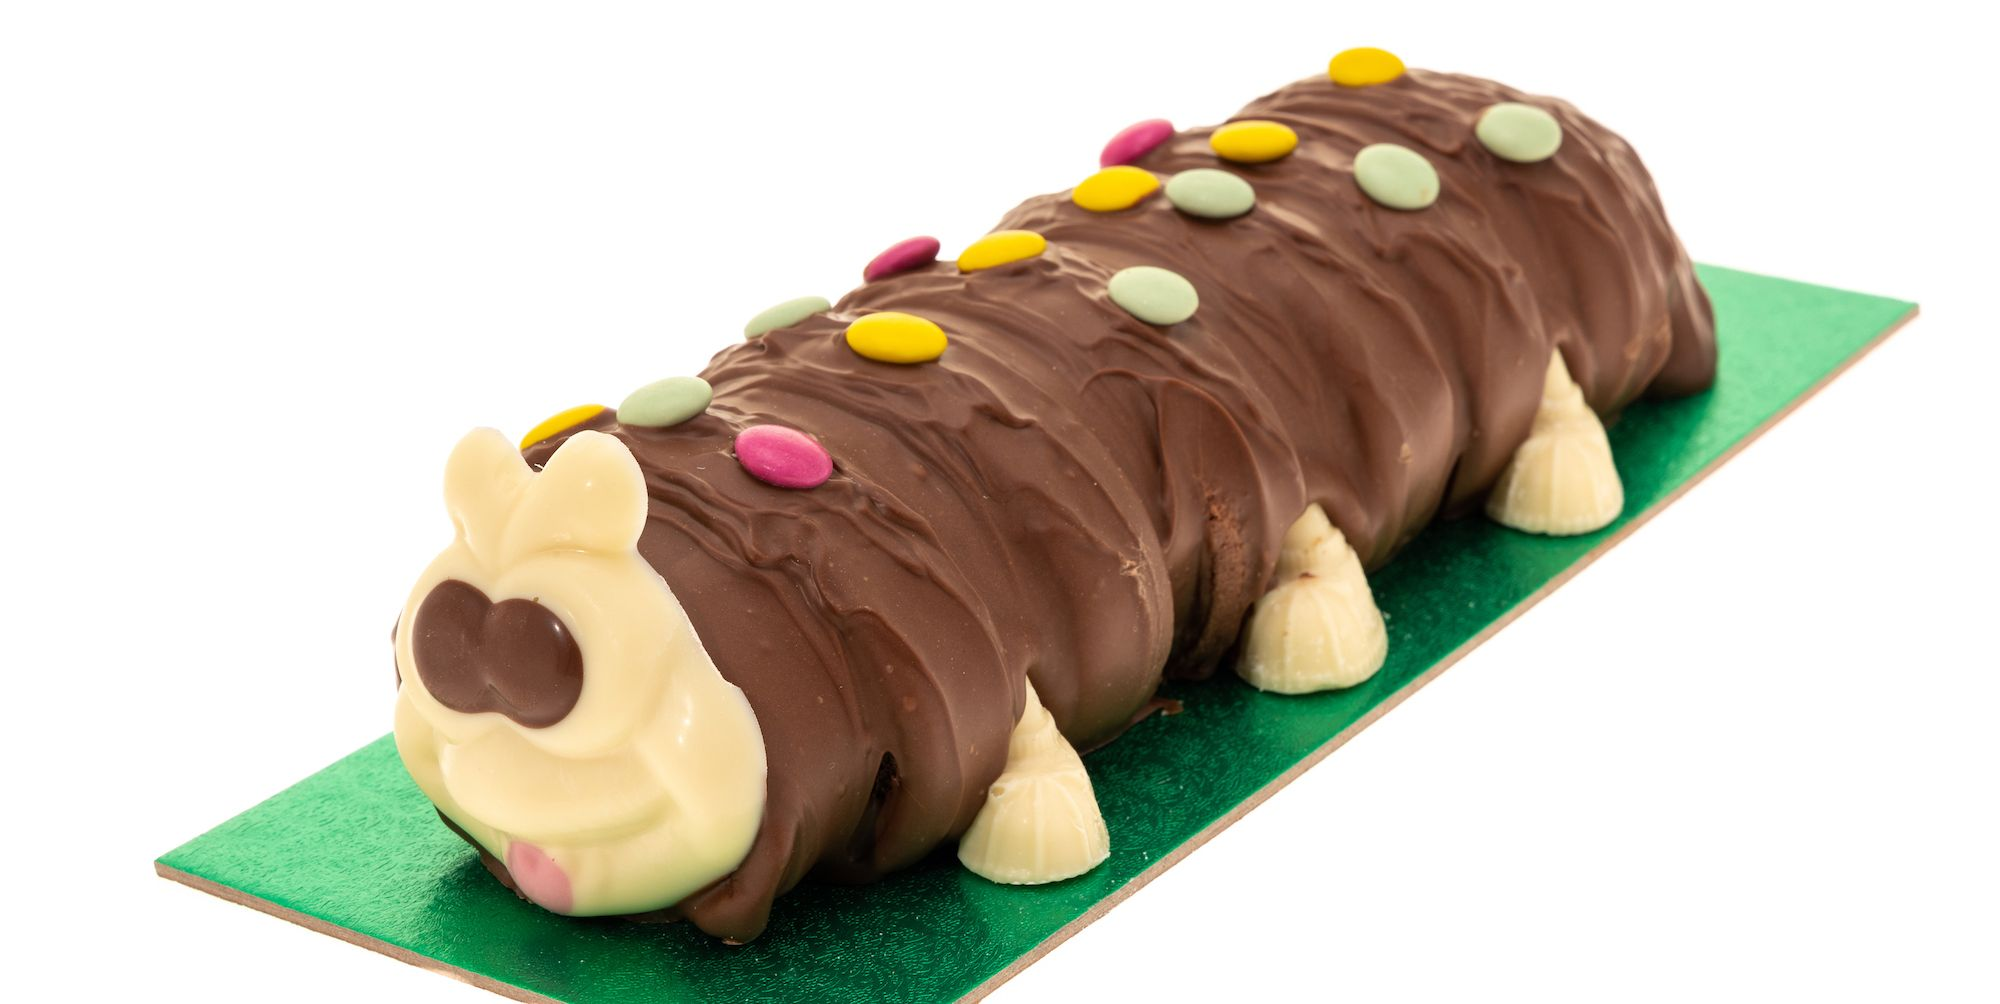 M&S is suing Aldi for copying Colin the Caterpillar cake 😮